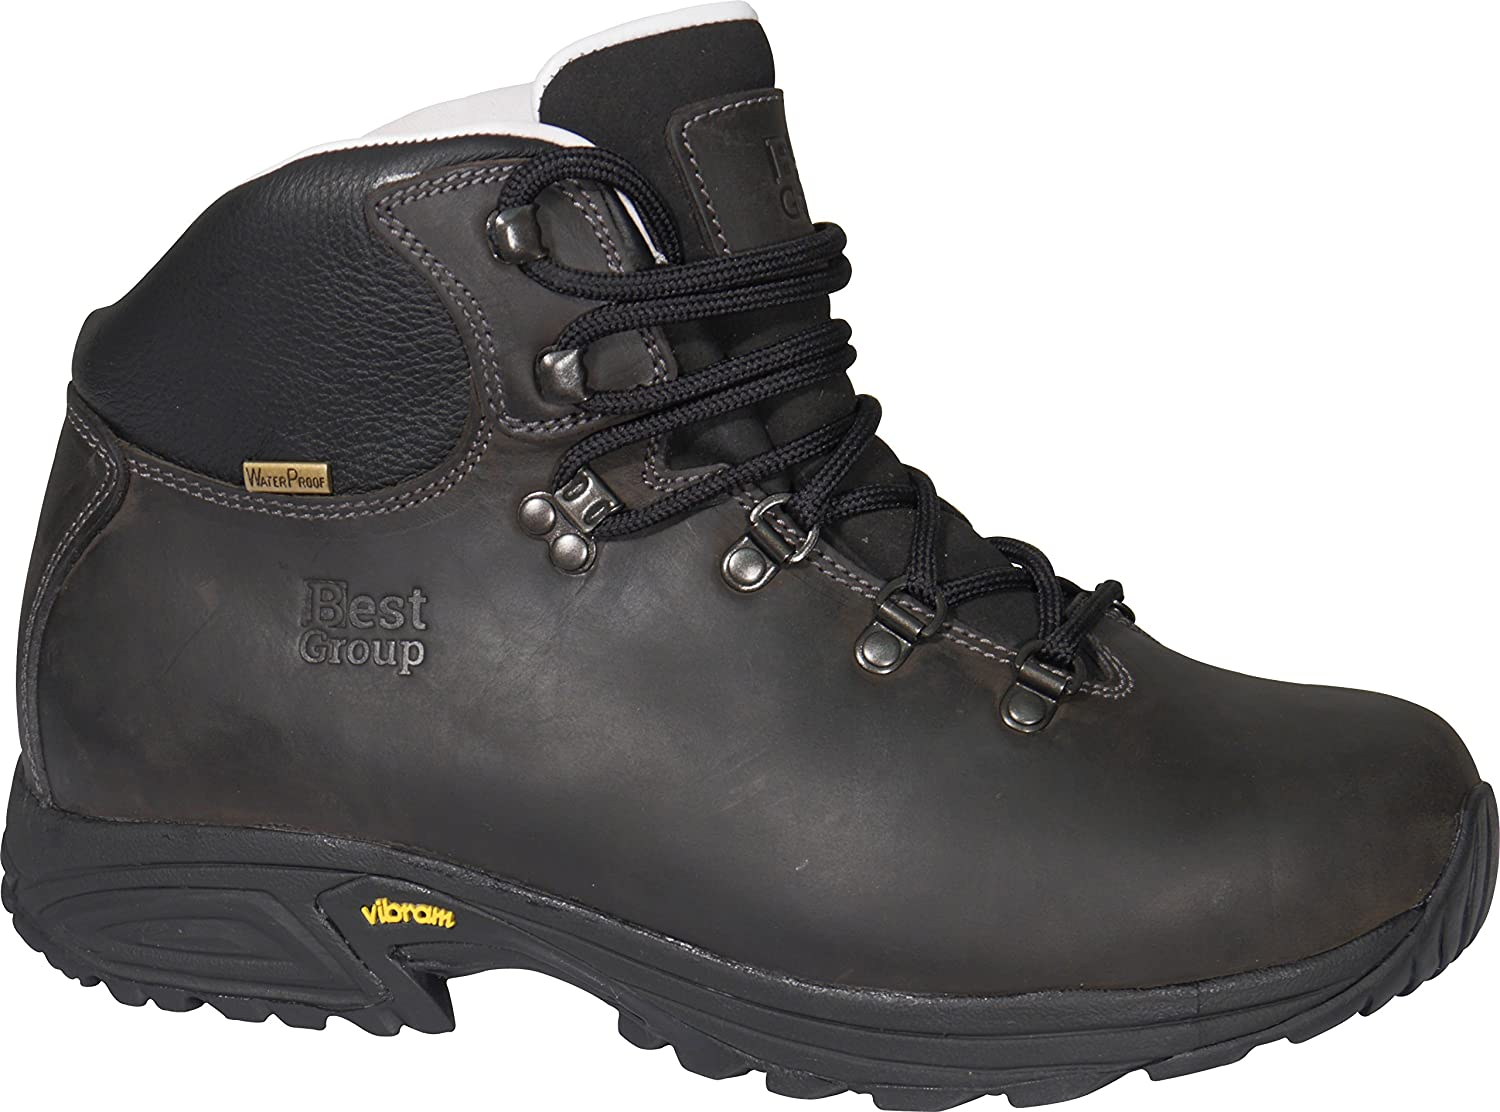 Best Group Storm Walking Boots